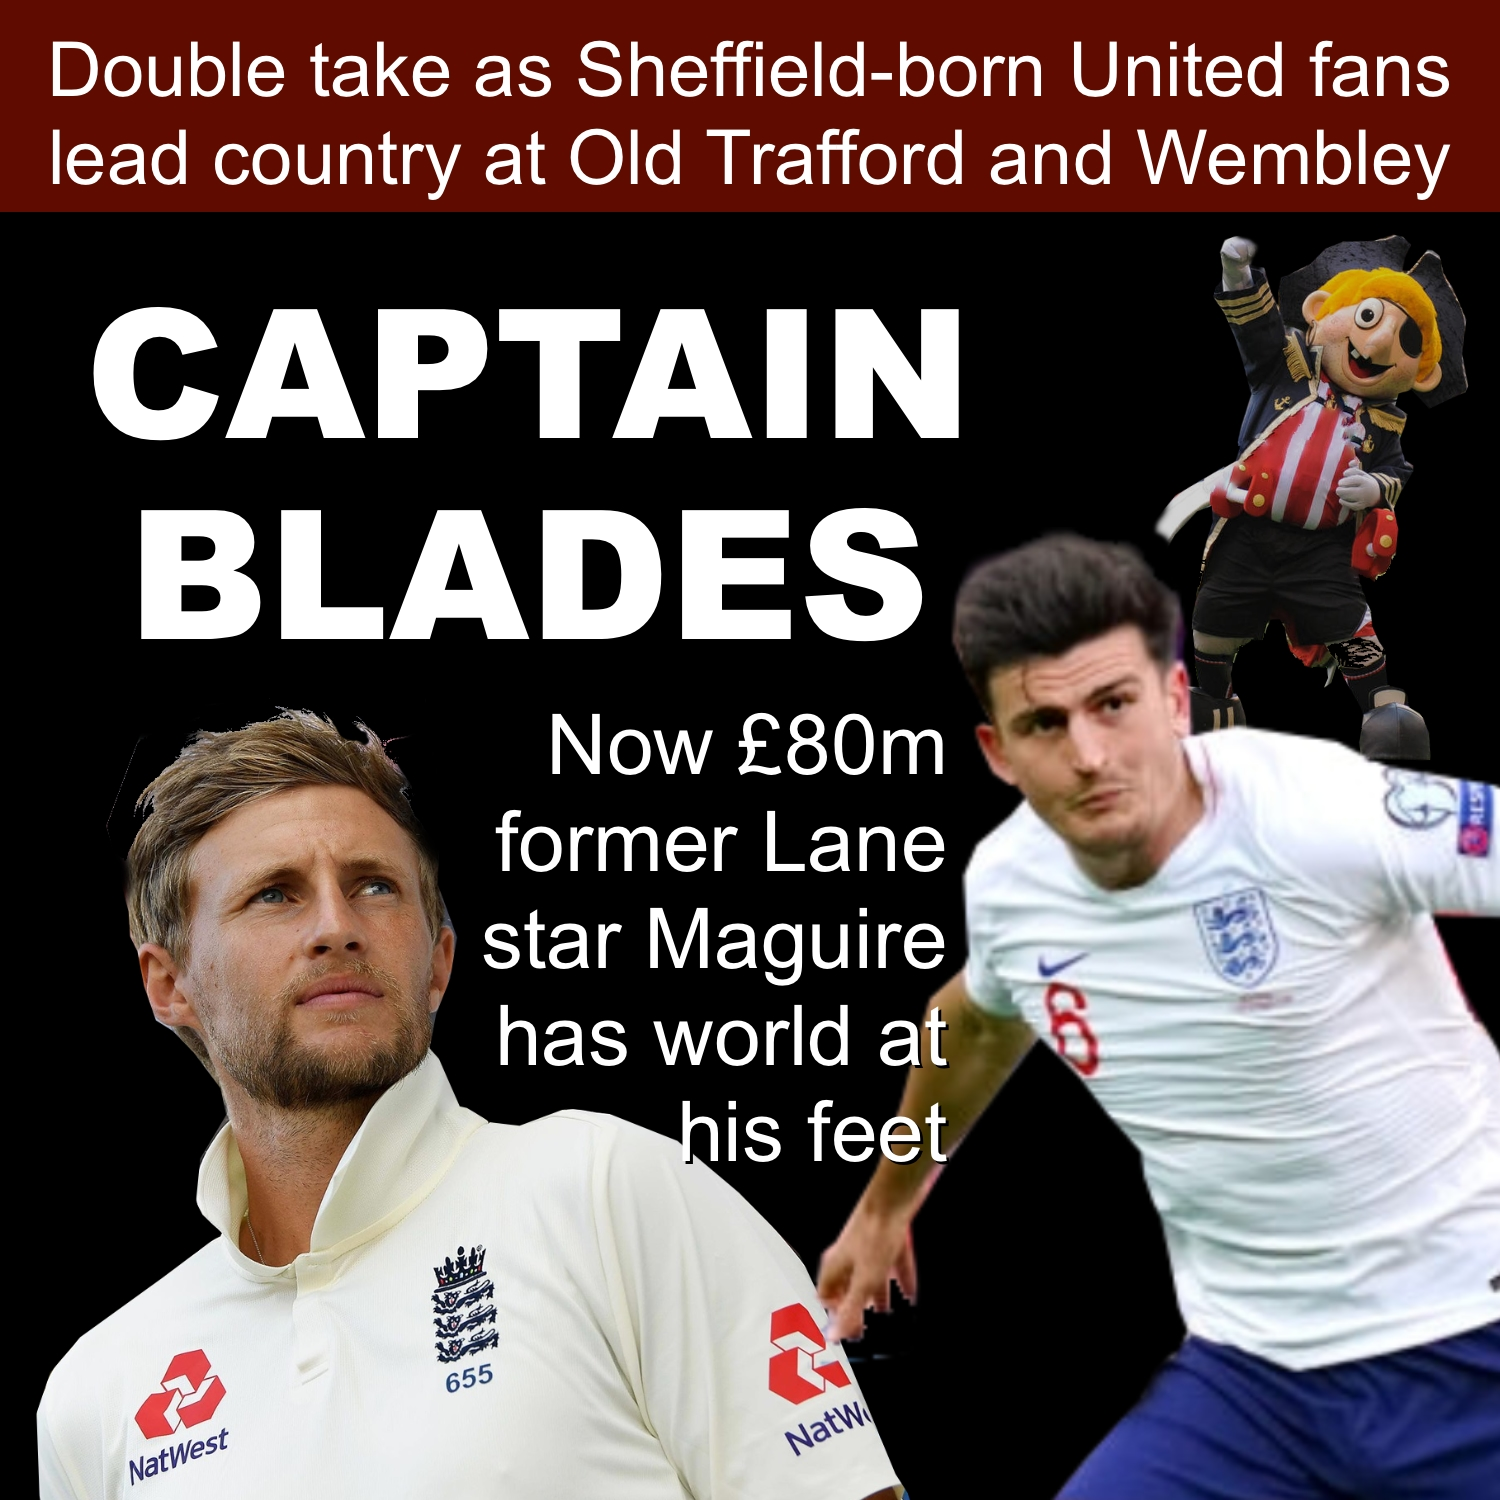 Captain Blades as Sheffield United fans Joe Root and Harry Maguire lead England at Old Trafford and Wembley in double honour for city of Sheffield.